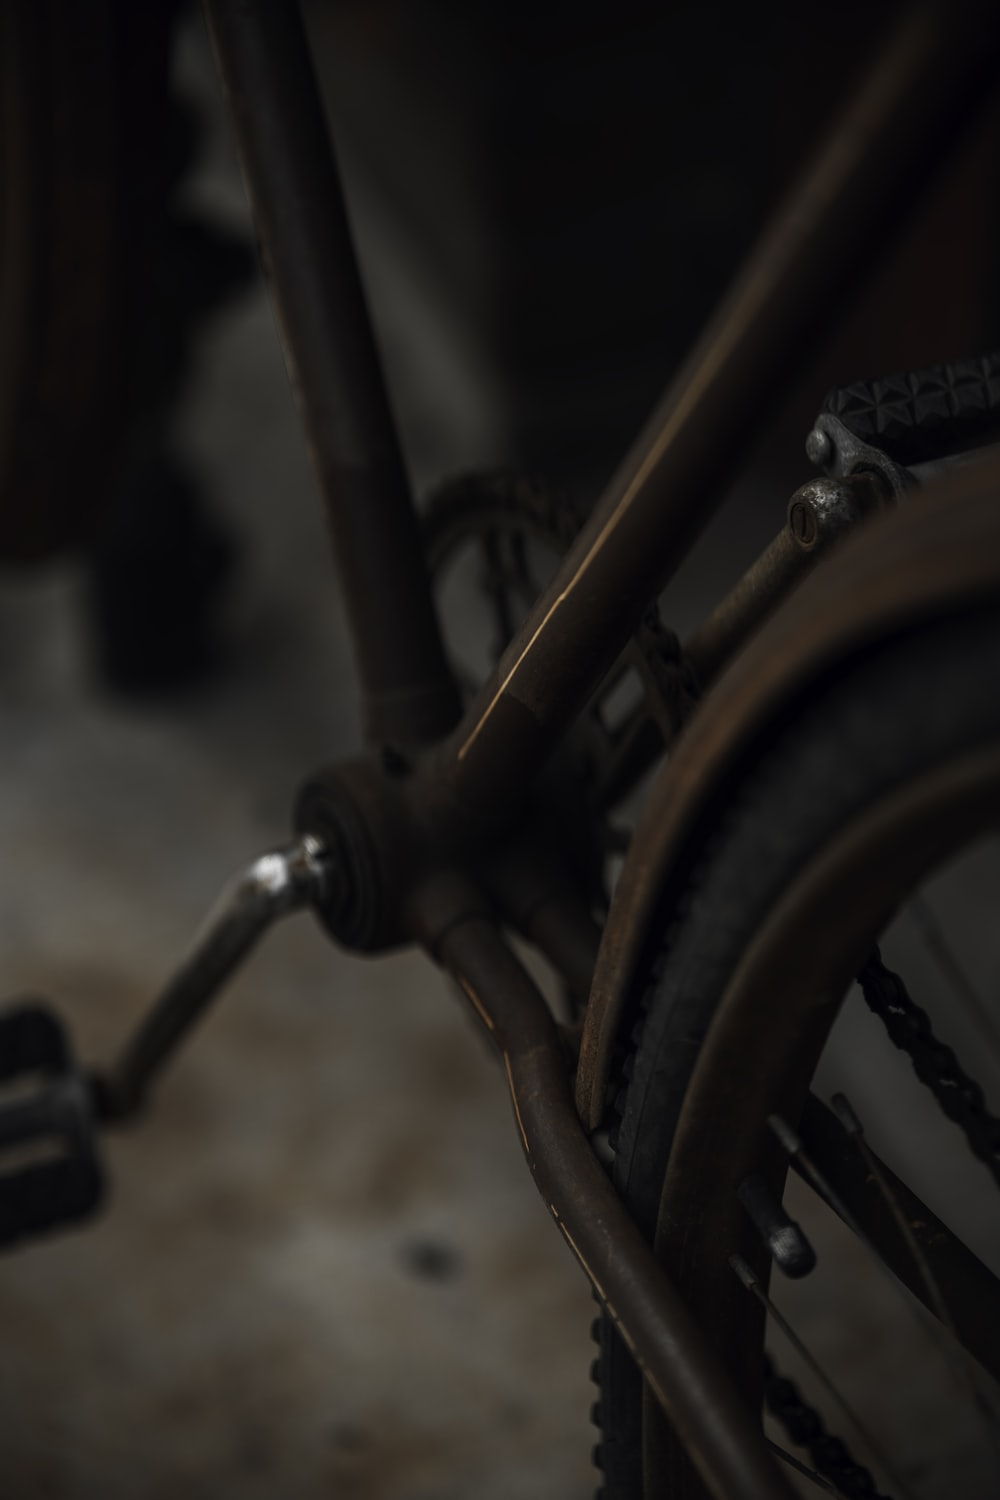 black bicycle wheel in close up photography